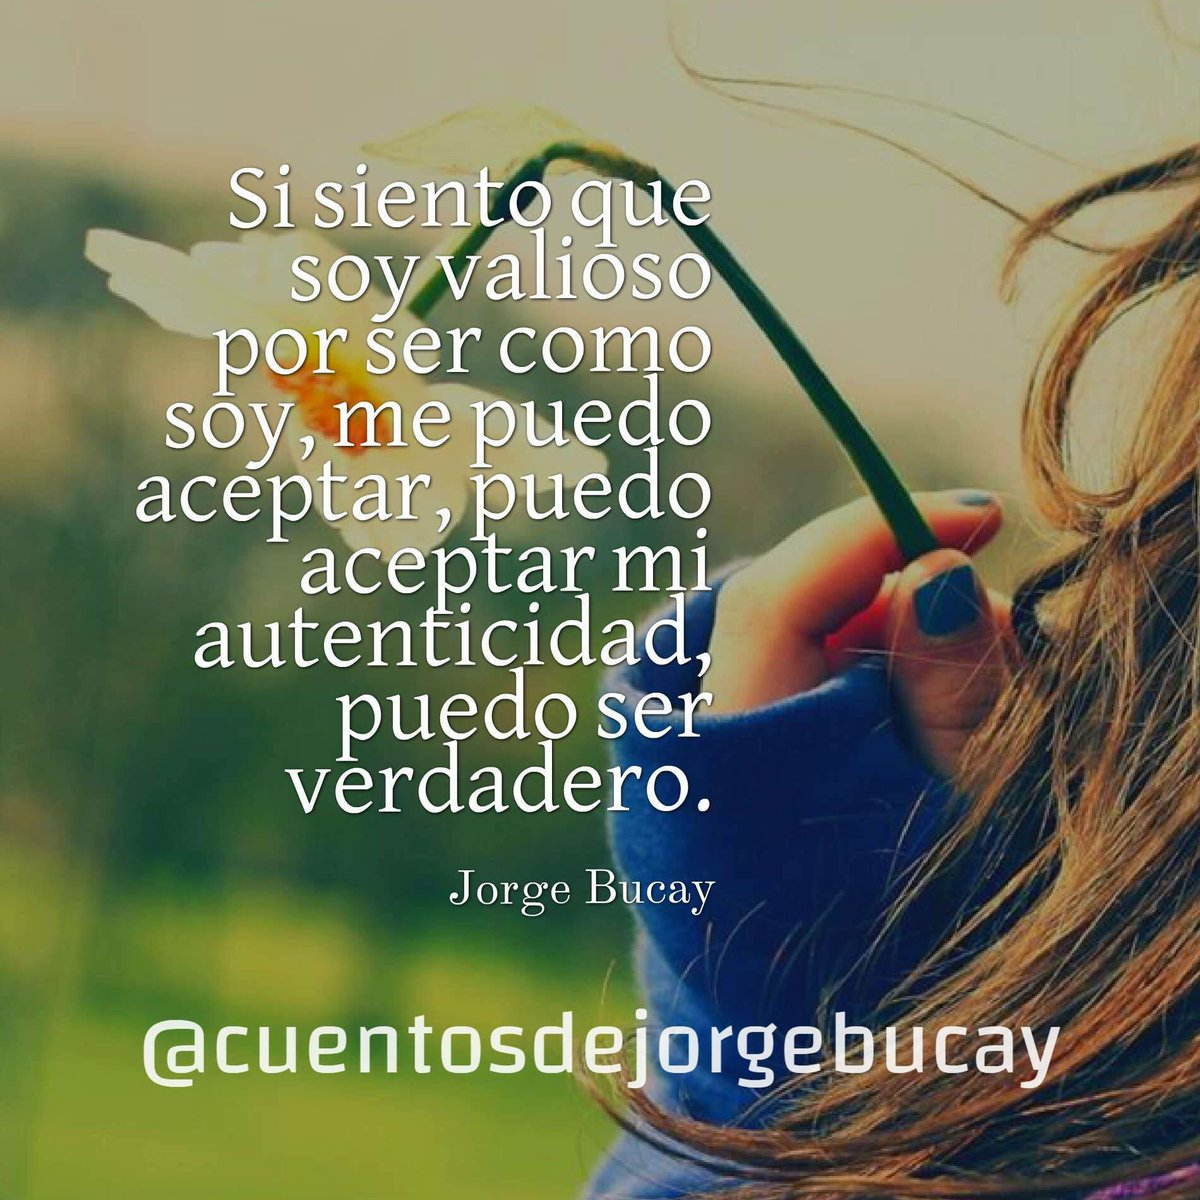 Cuentos Jorge Bucay A Twitteren Jorgebucay Bucay Frases